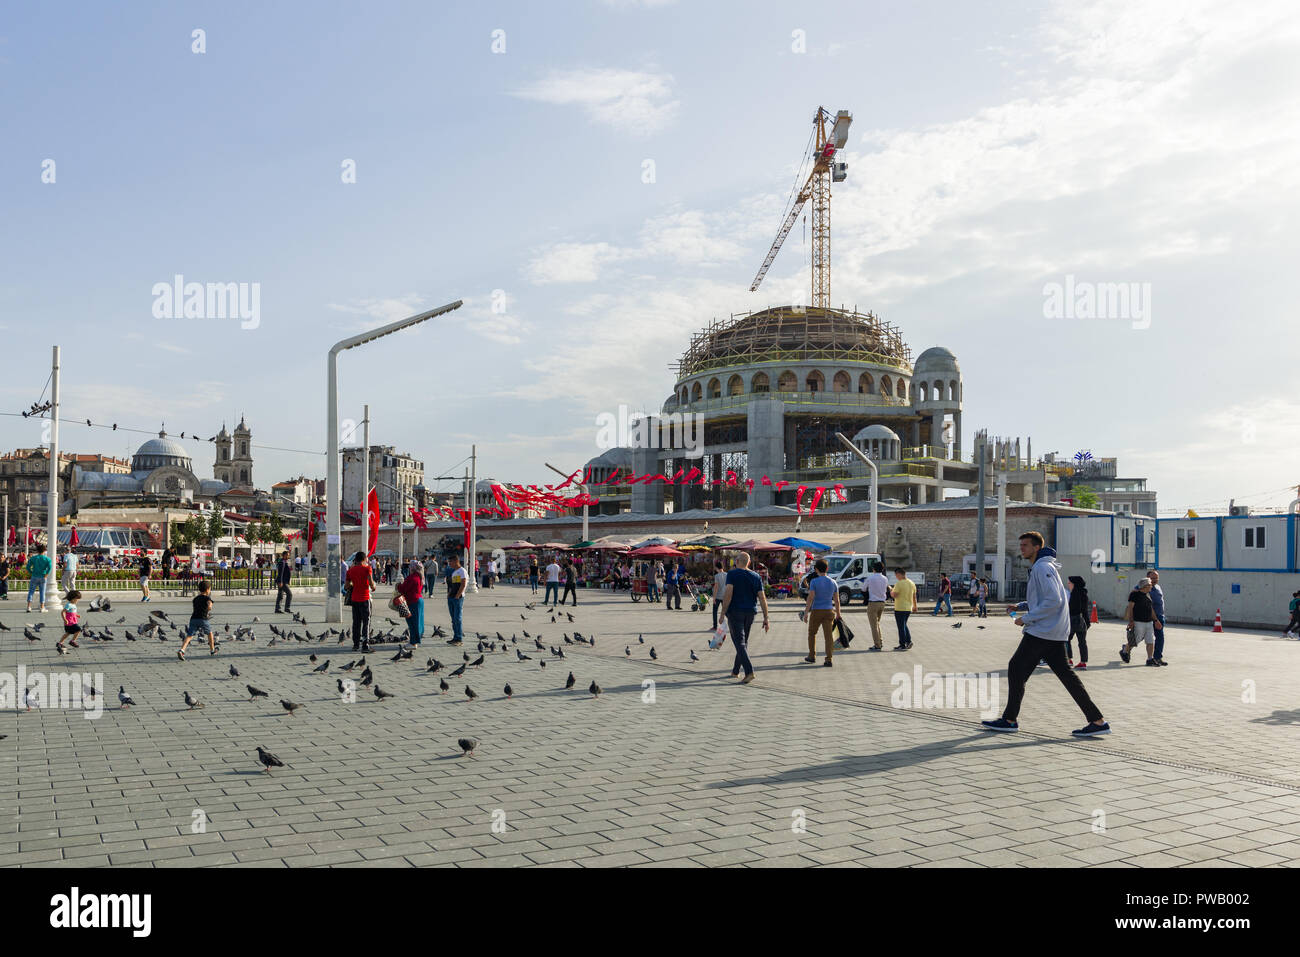 A mosque under construction near Taksim Square as people walk past, Istanbul, Turkey - Stock Image